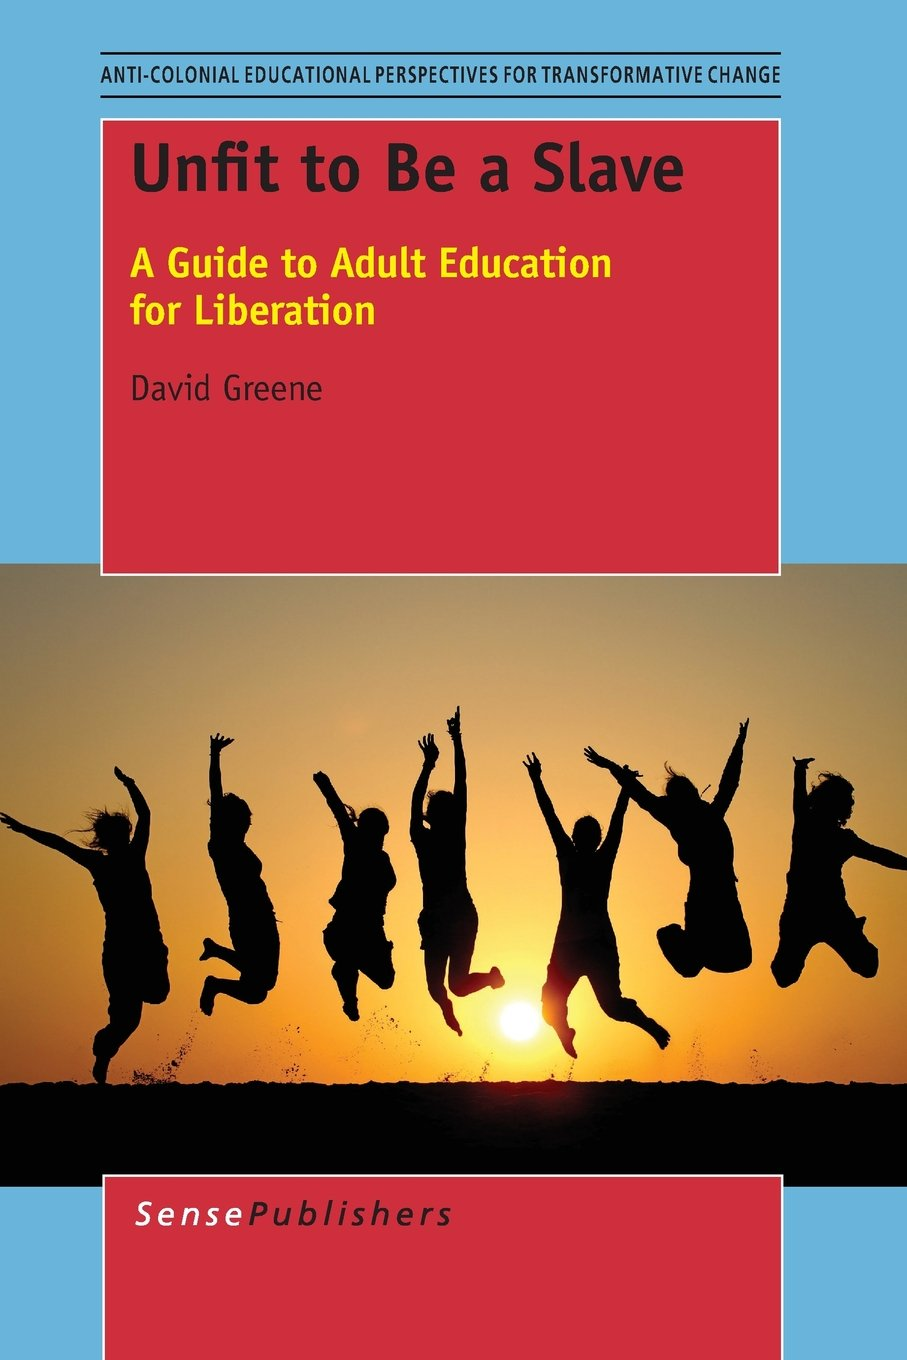 Unfit to Be a Slave: A Guide to Adult Education for Liberation (Anti-colonial Educational Perspectives for Transformative Change)